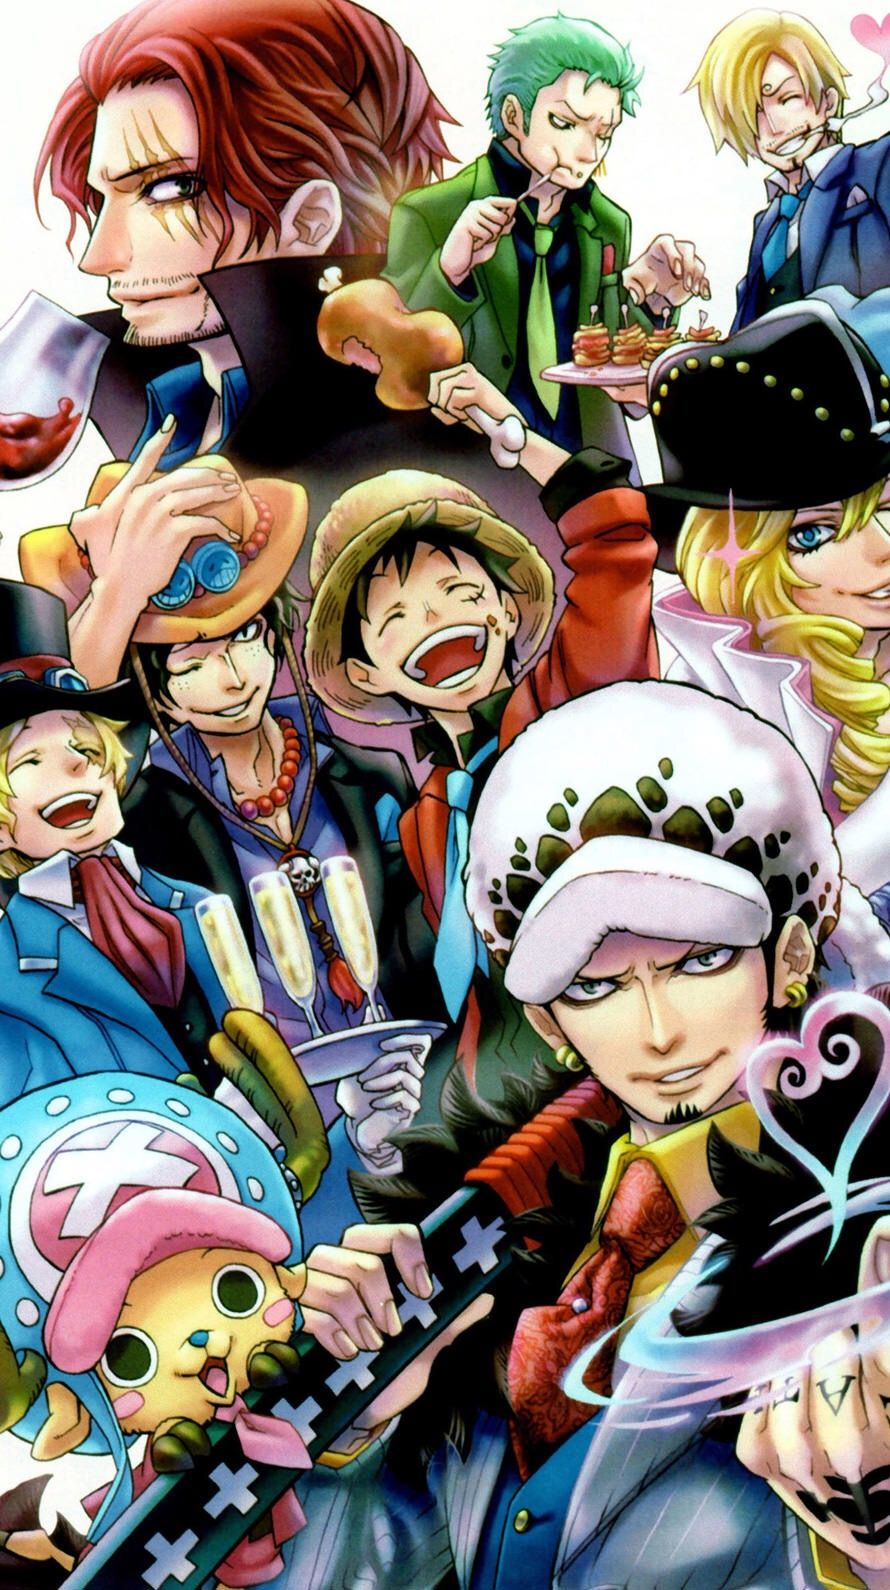 Pin by Chanel Aprahamian on One Piece One piece pictures